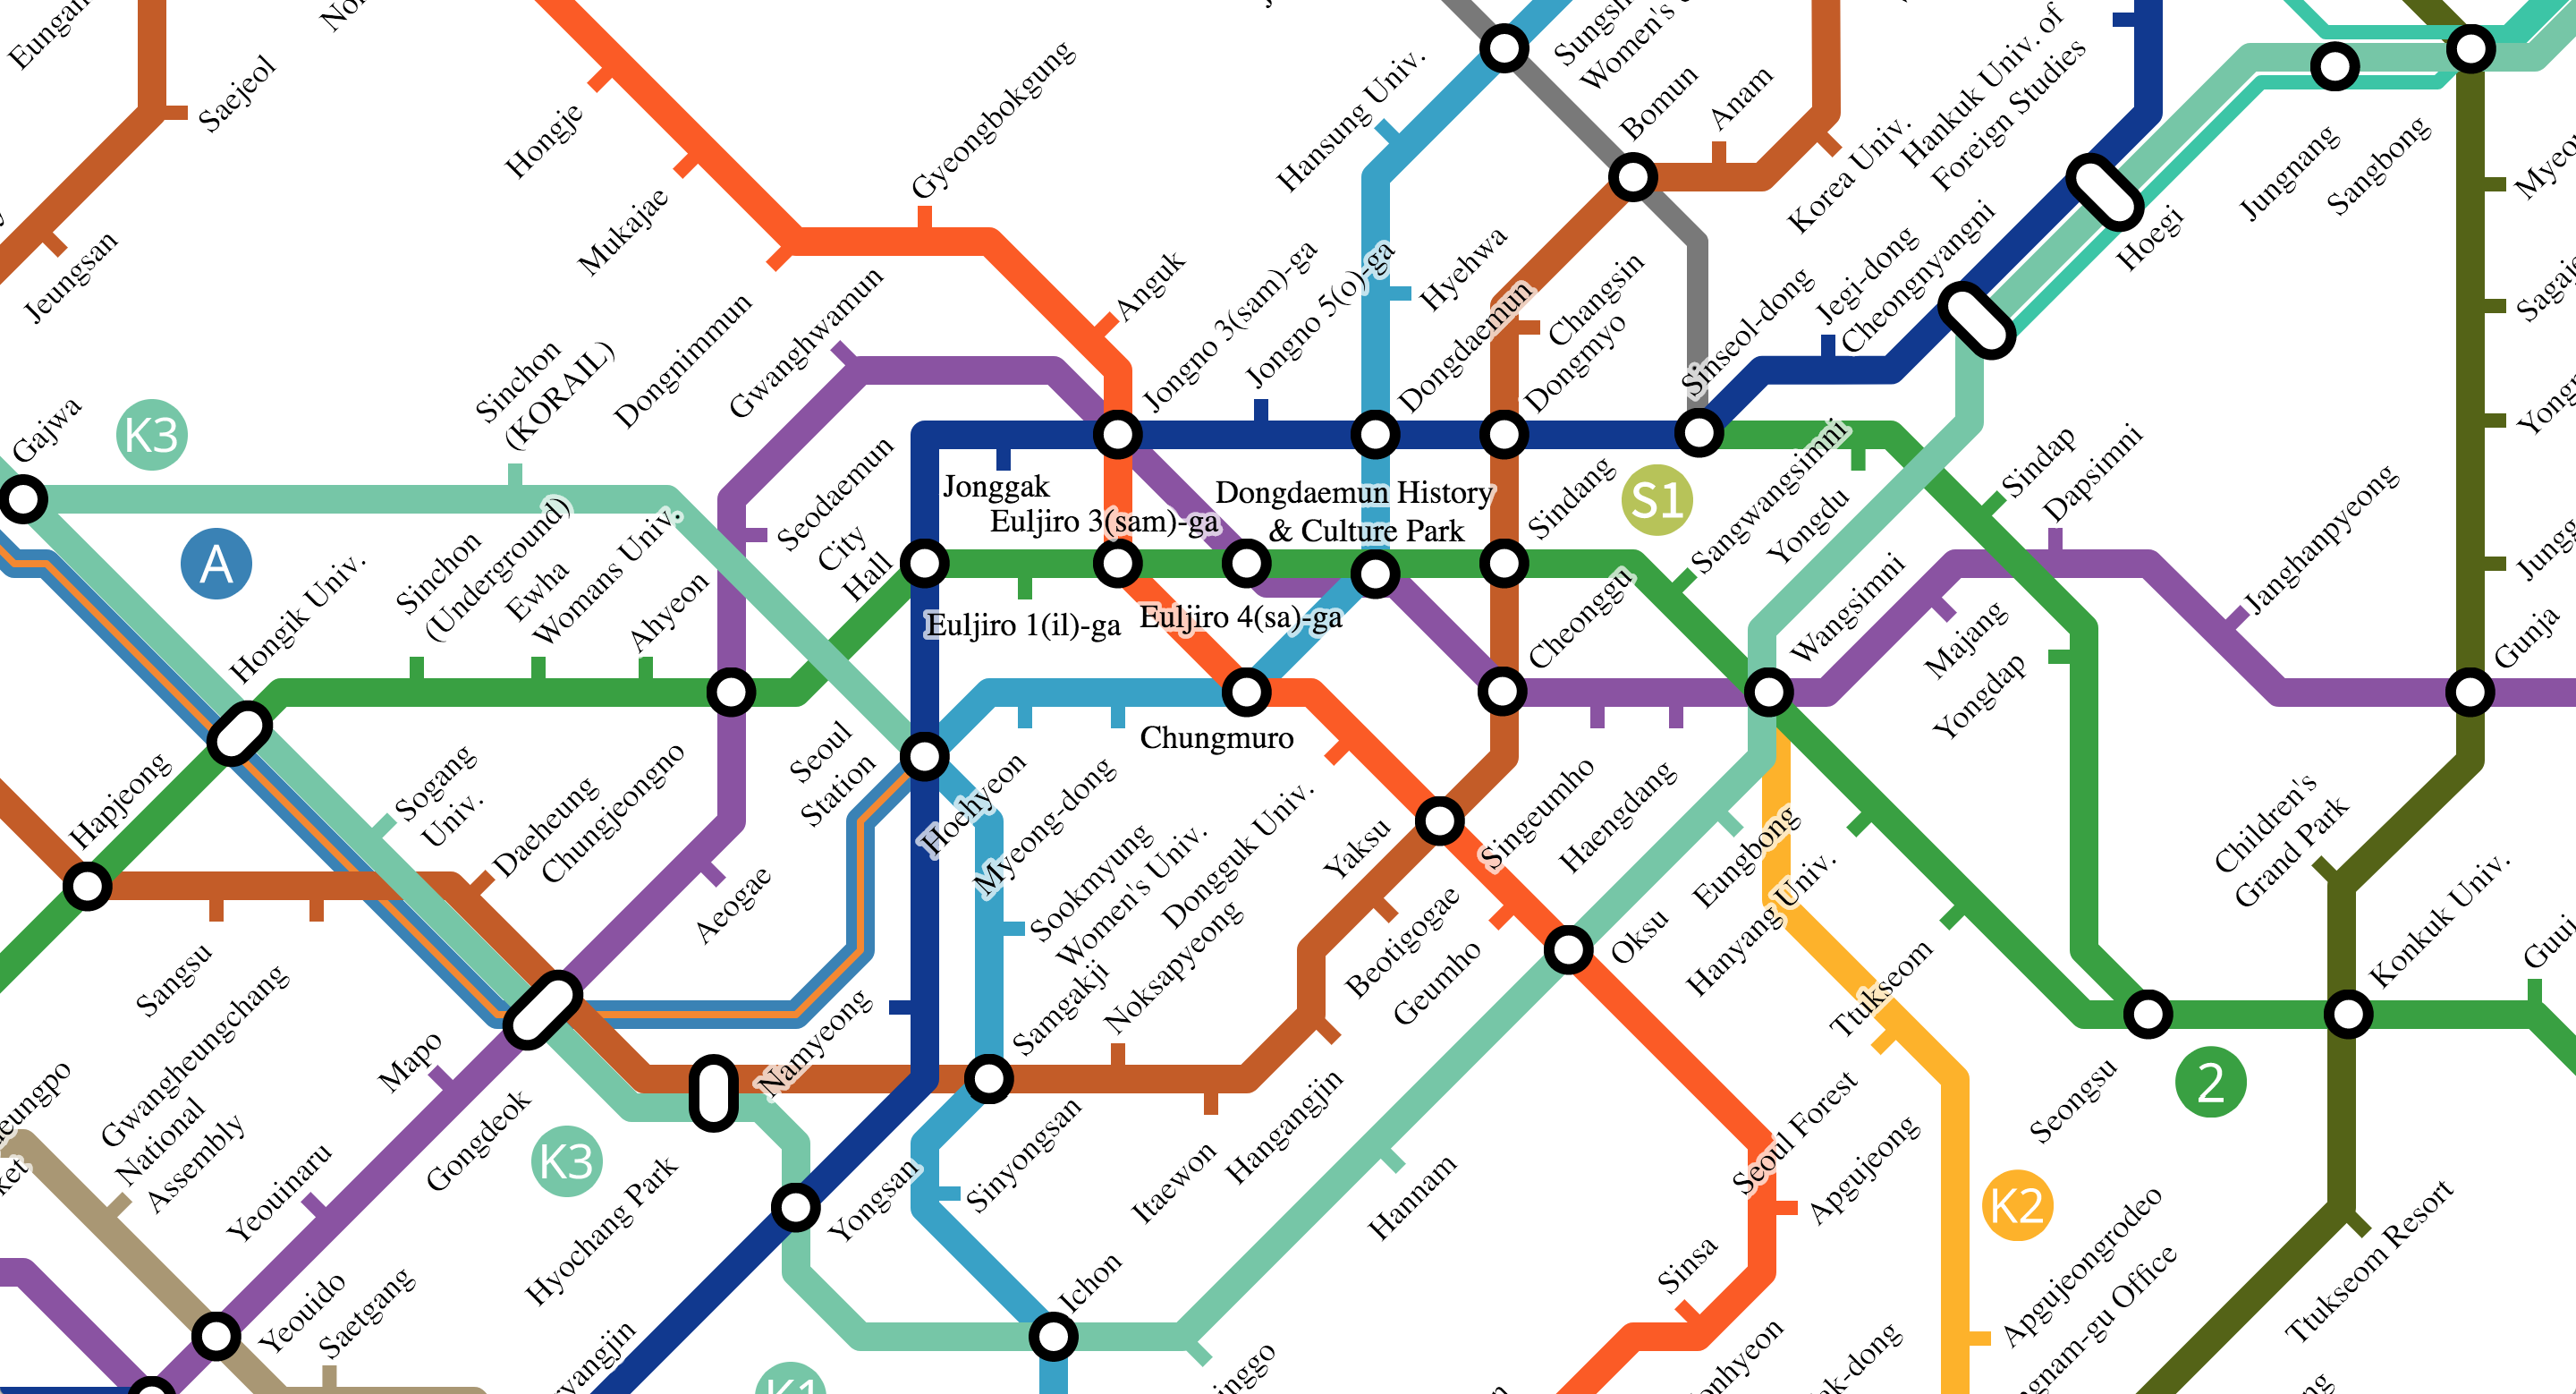 Seoul South Korea Subway Map.A Comprehensive Review Of Seoul S Subway By Reverse Engineers Medium